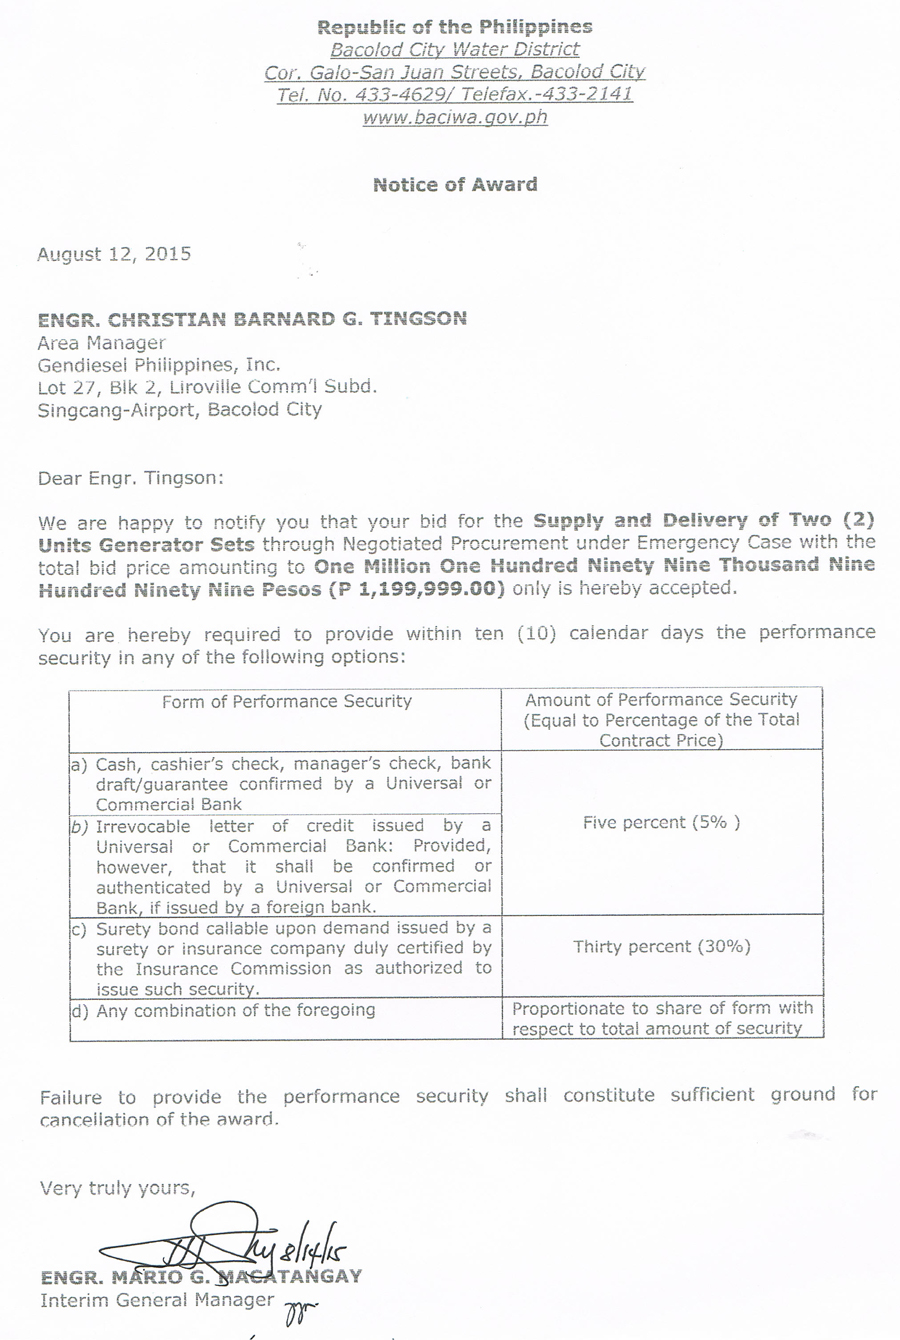 notice of award for notice of award generator sets bacolod city